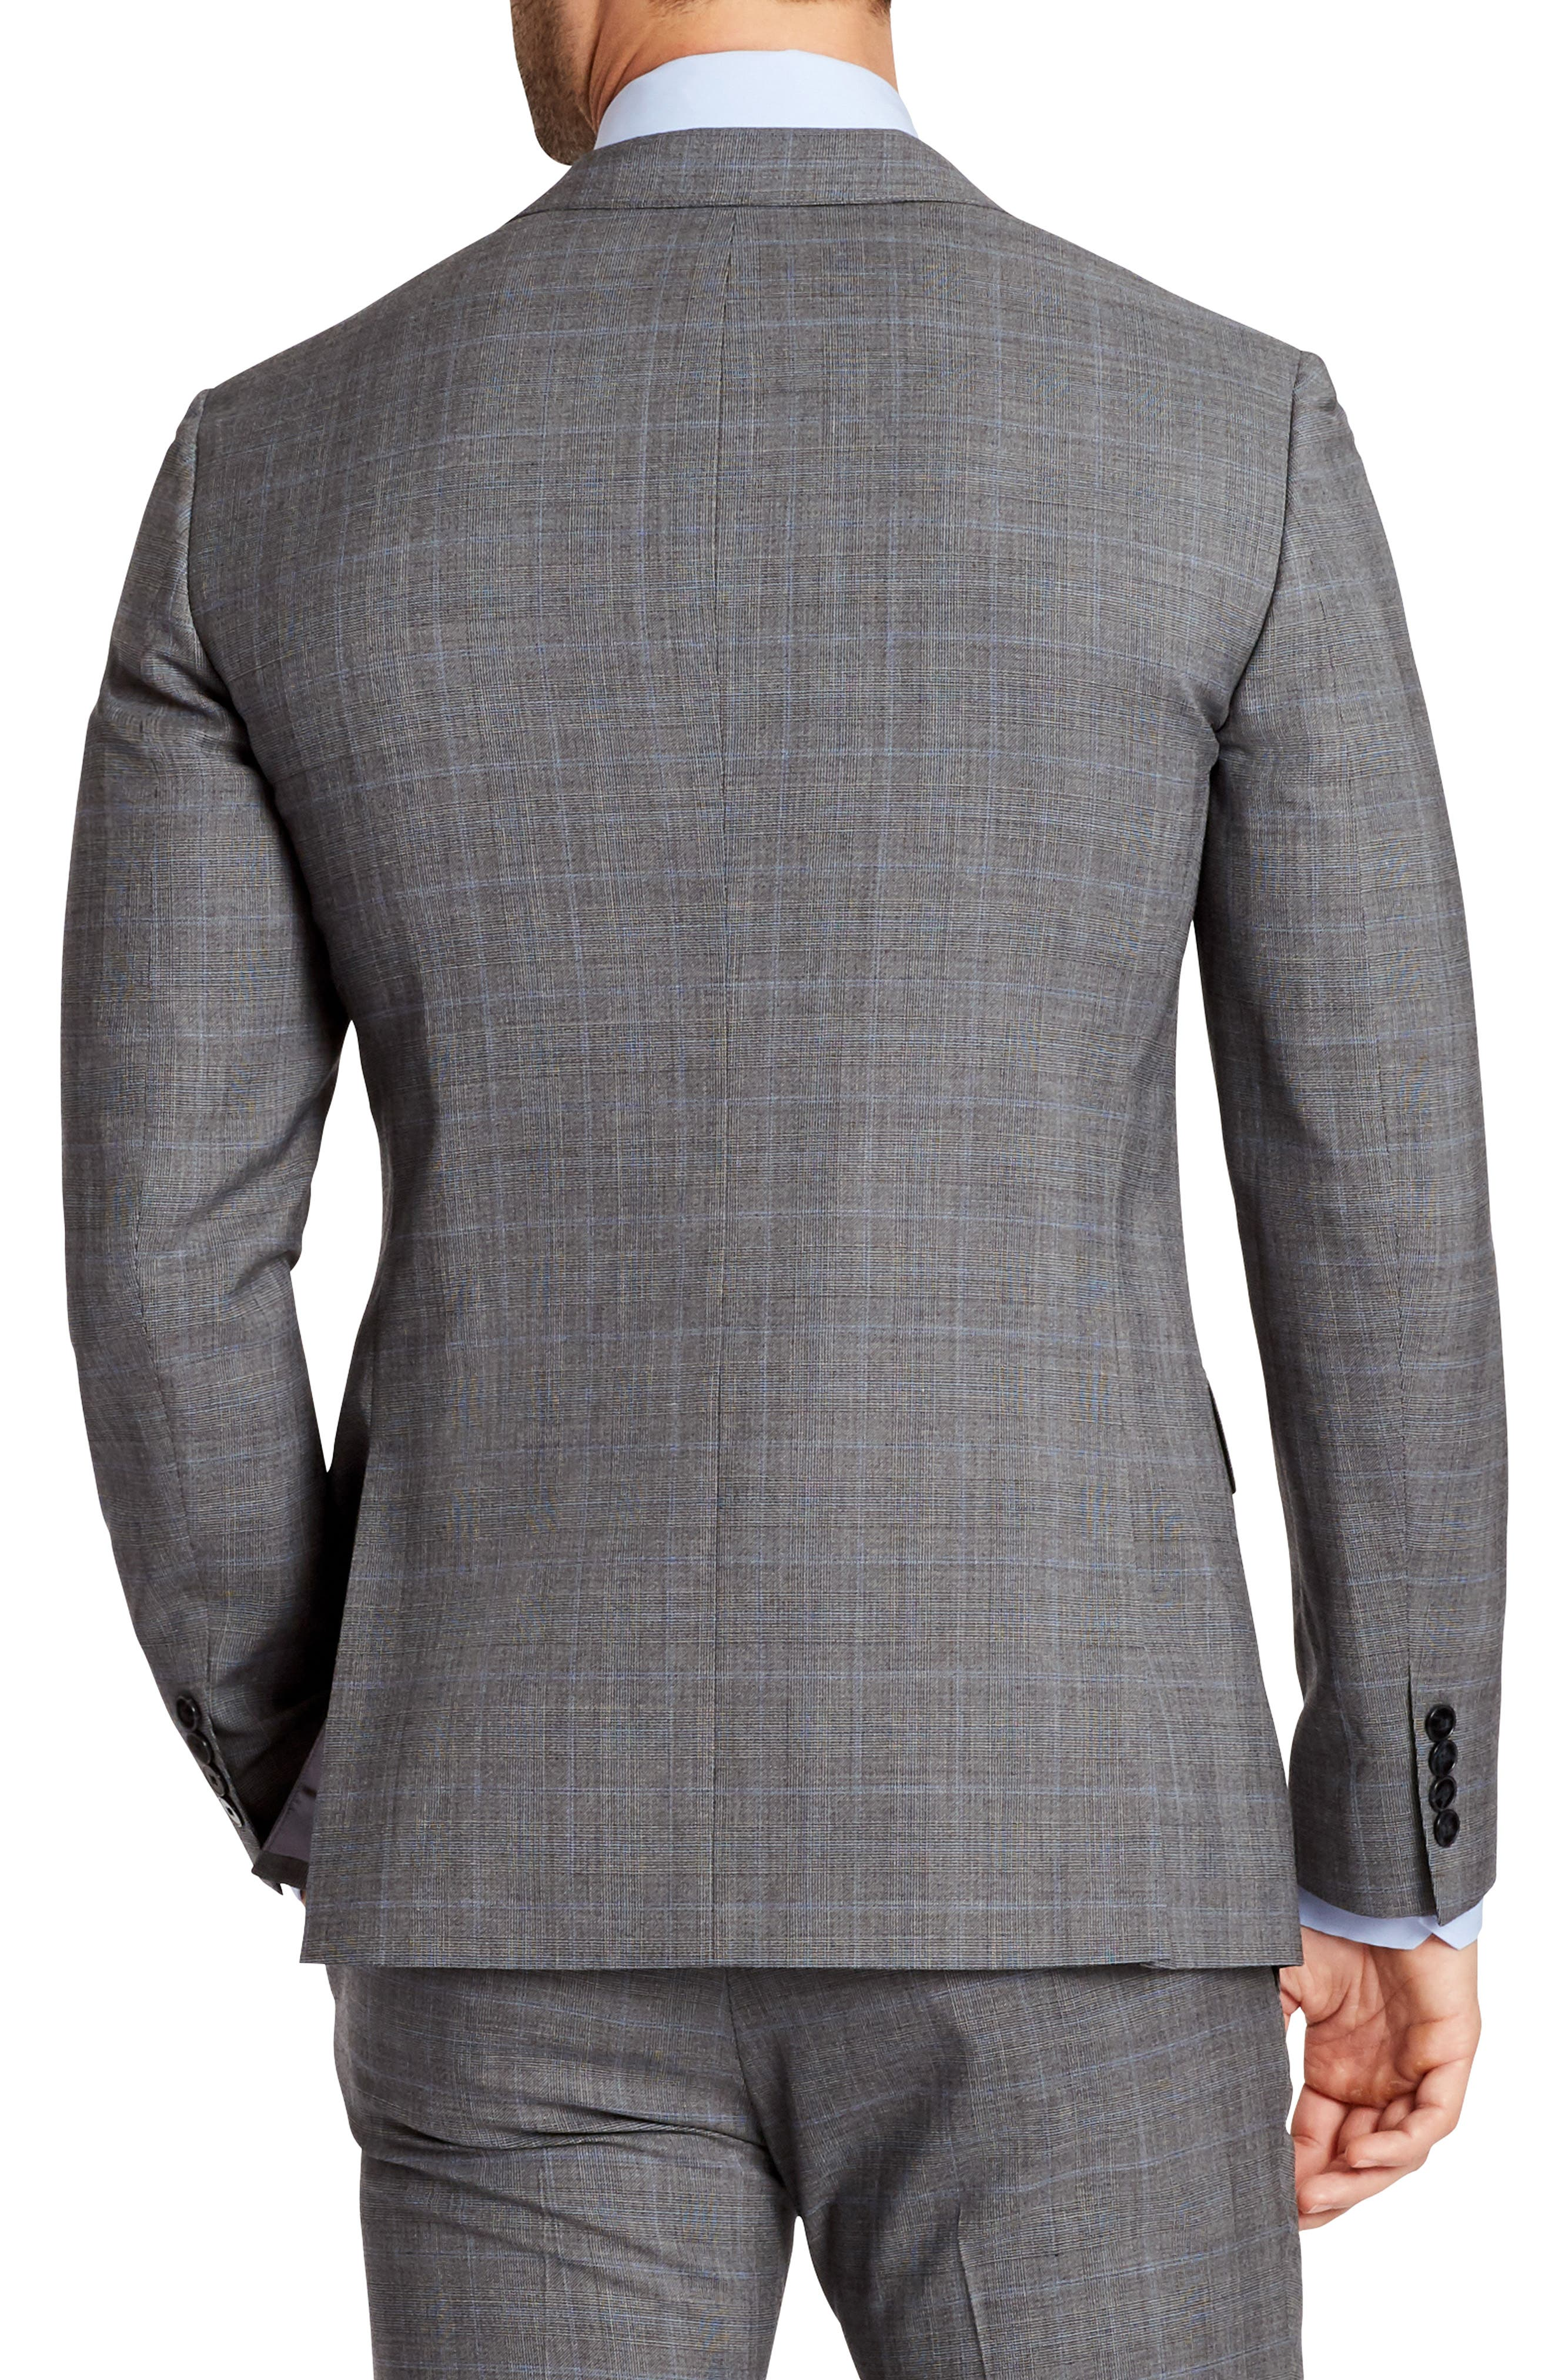 Jetsetter Slim Fit Plaid Stretch Wool Sport Coat,                             Alternate thumbnail 2, color,                             020